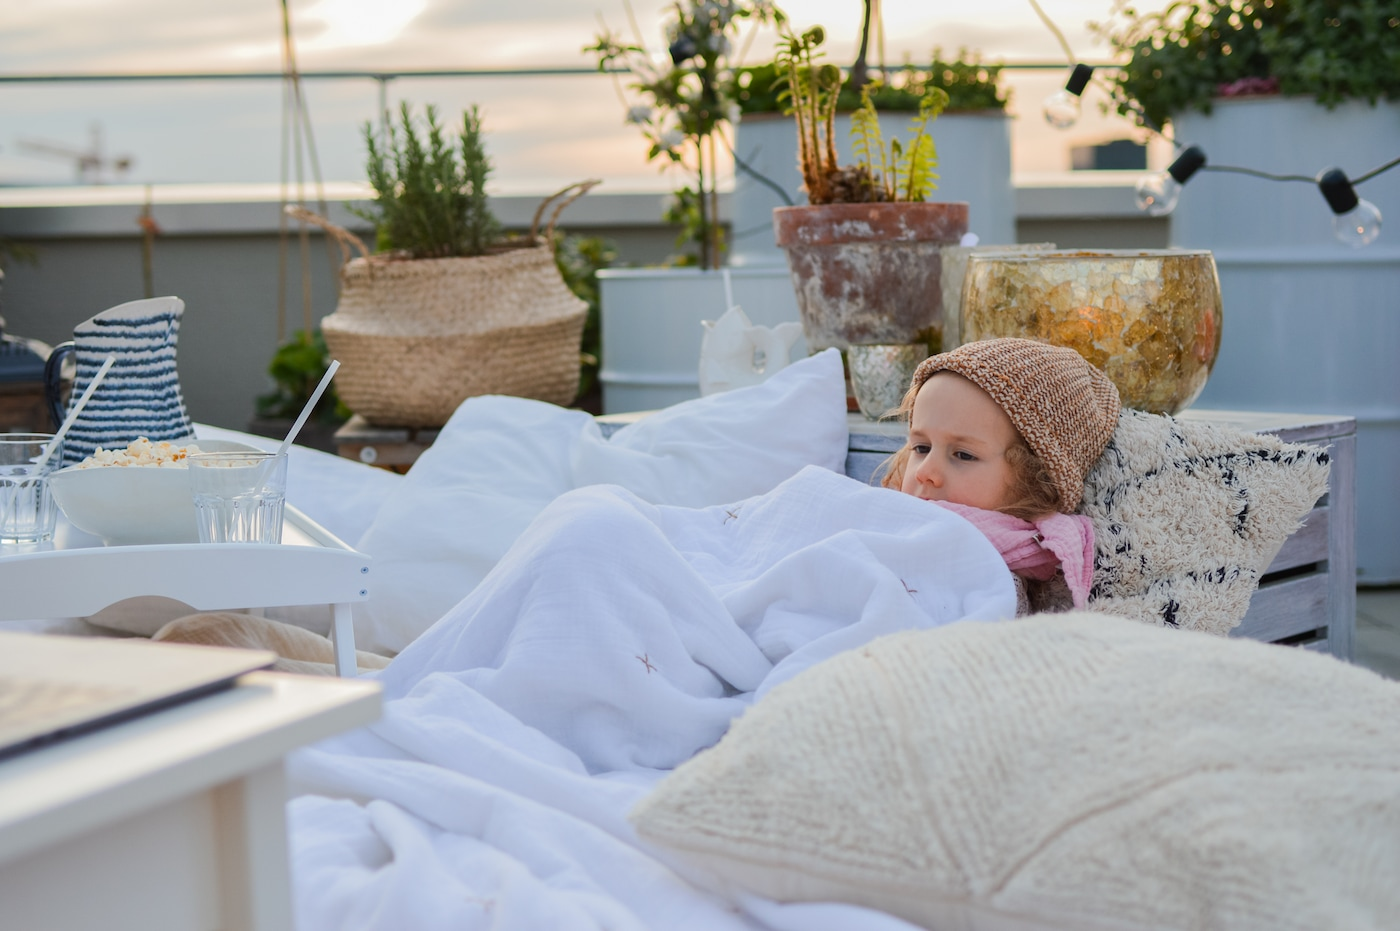 Here's how to transform your roof terrace into a cinema for kids